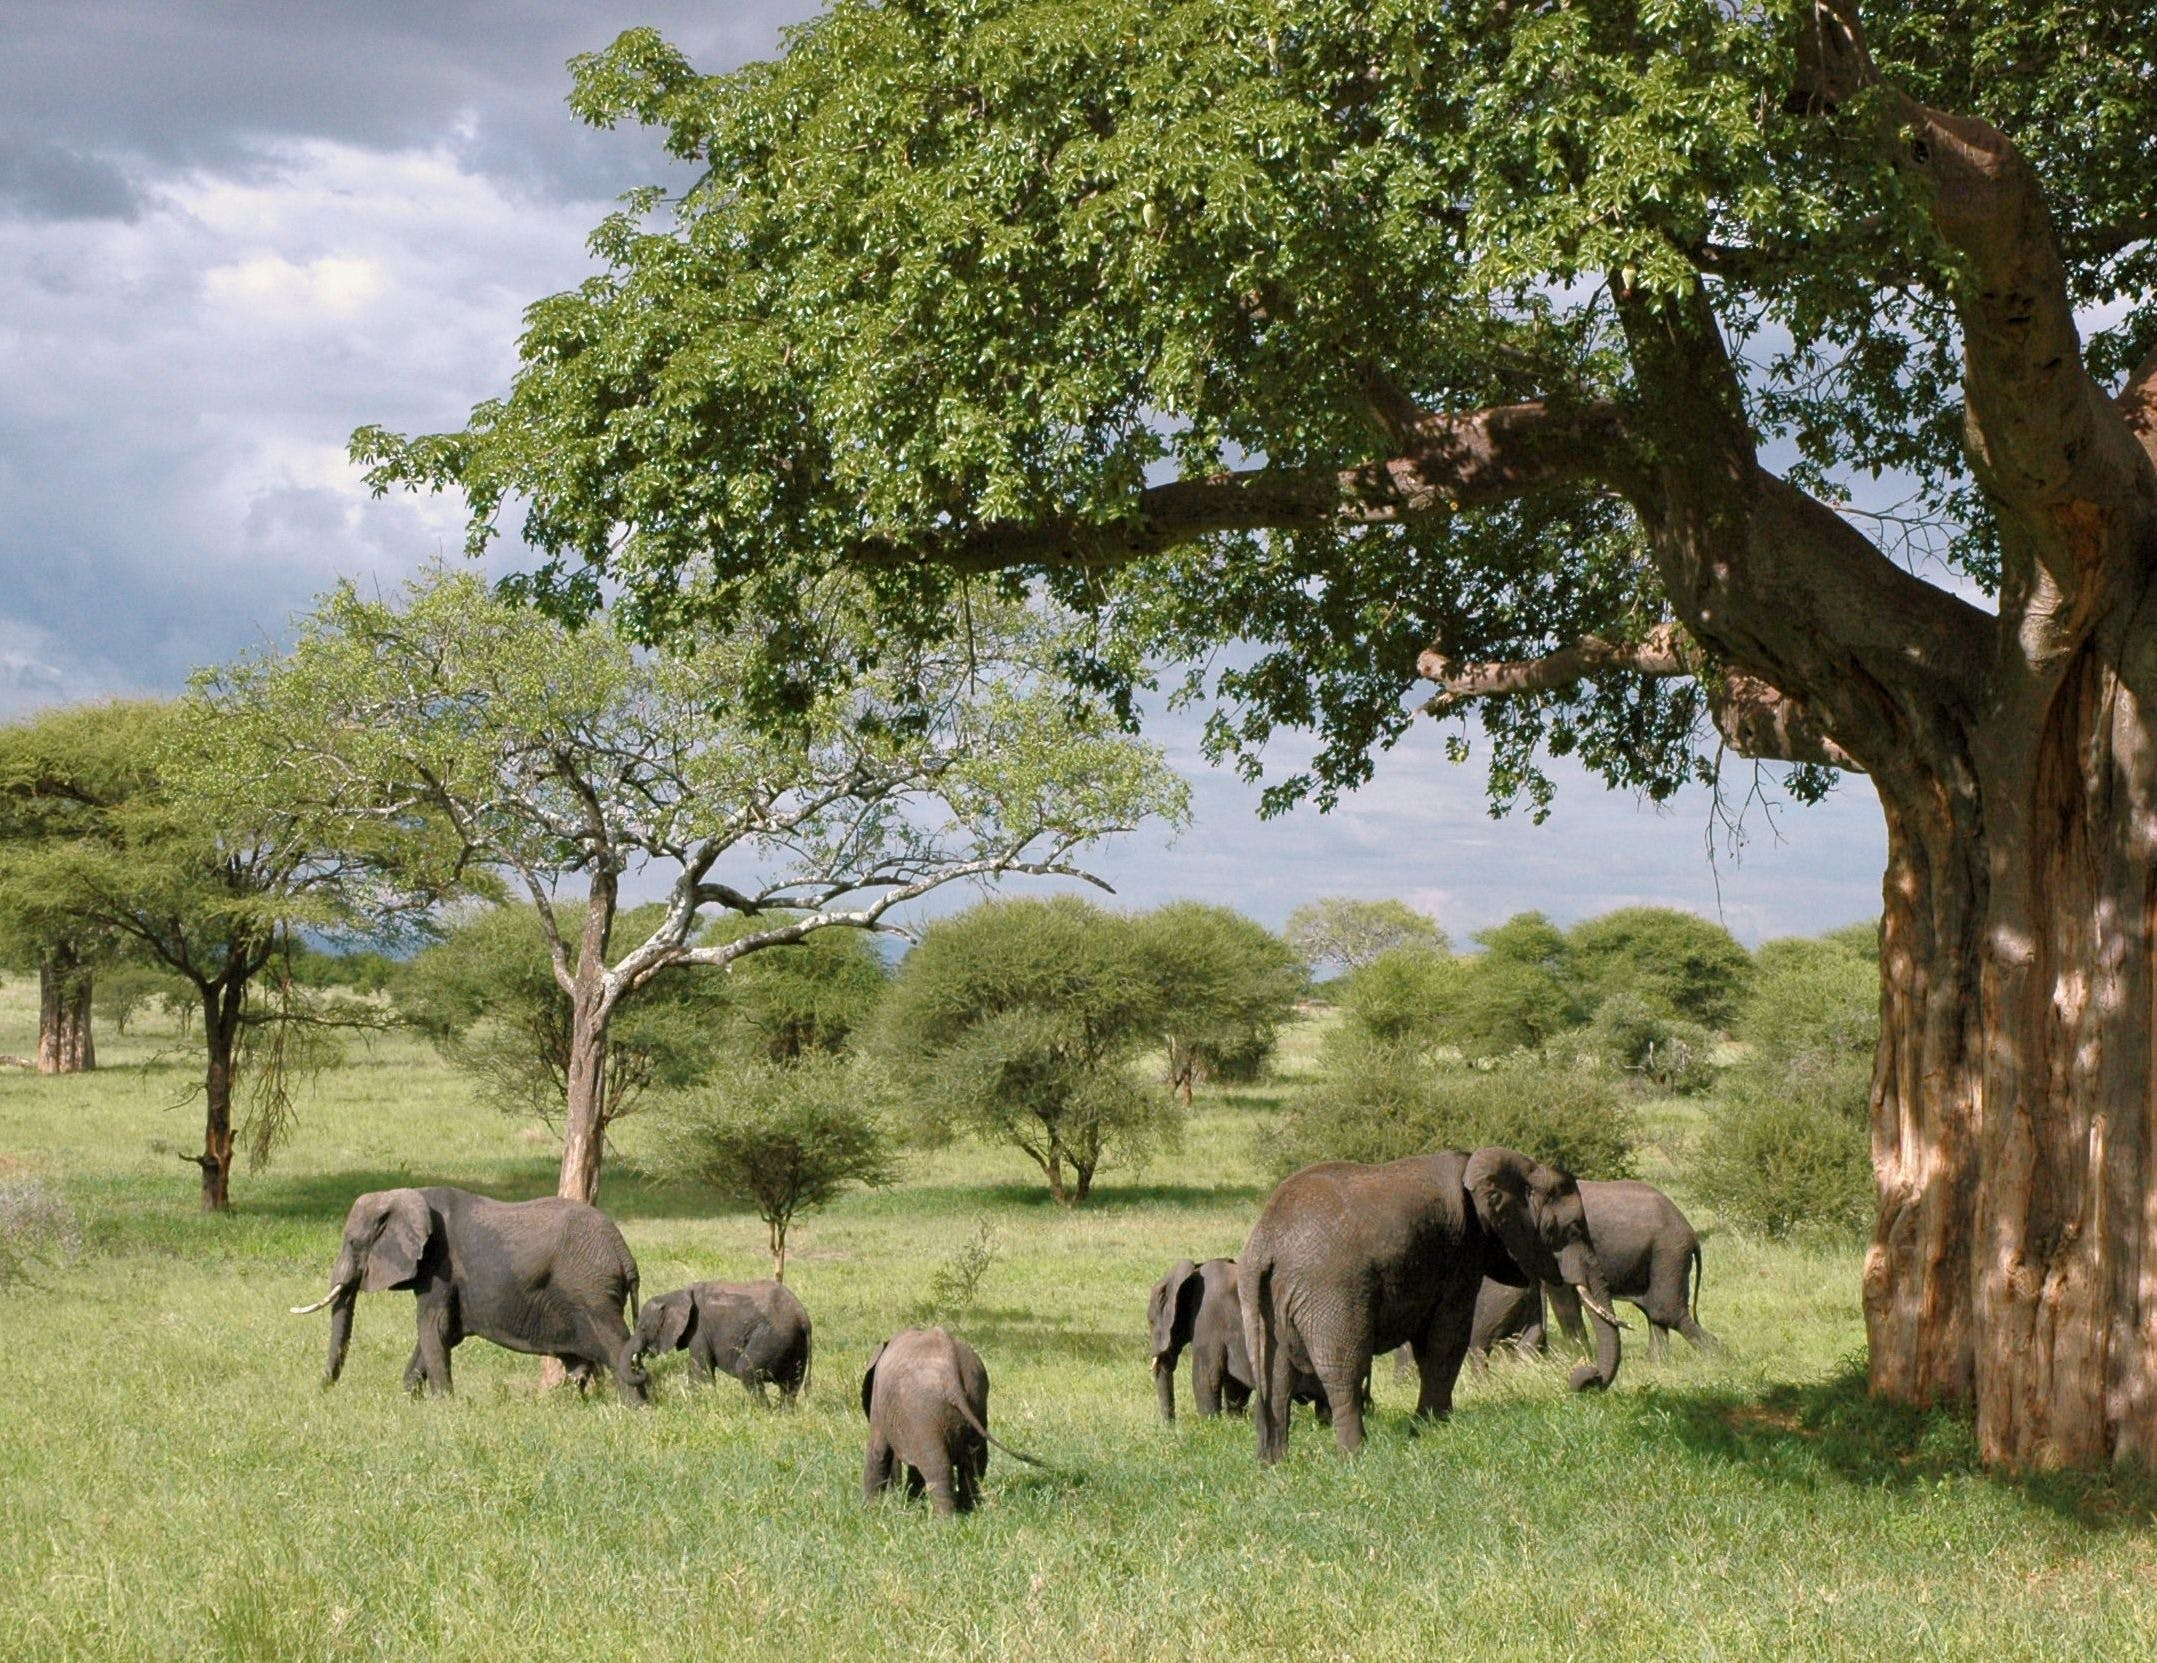 Gray Elephant Herd Under Green Tree on Green Grass Fields during Daytime